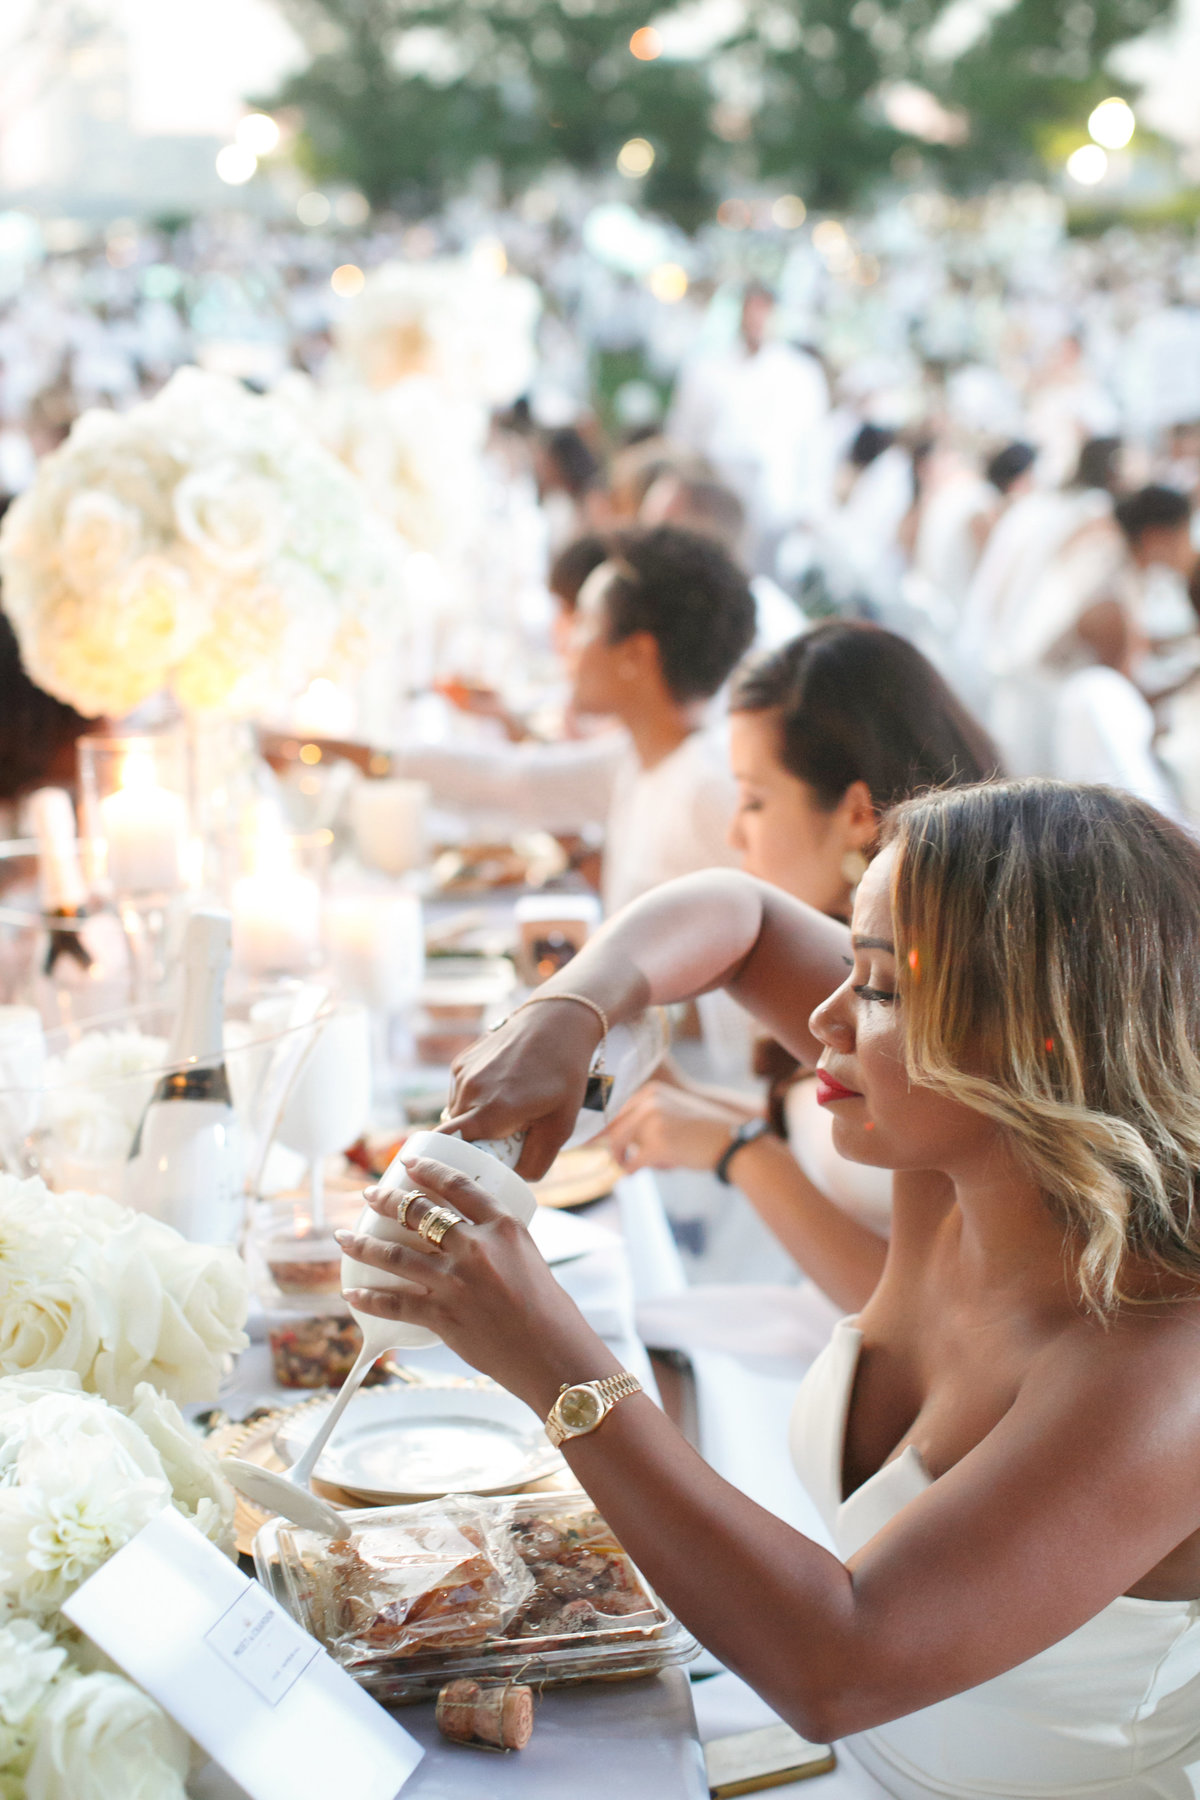 Amy_Anaiz_Le_Diner_En_Blanc_New_York_City_021